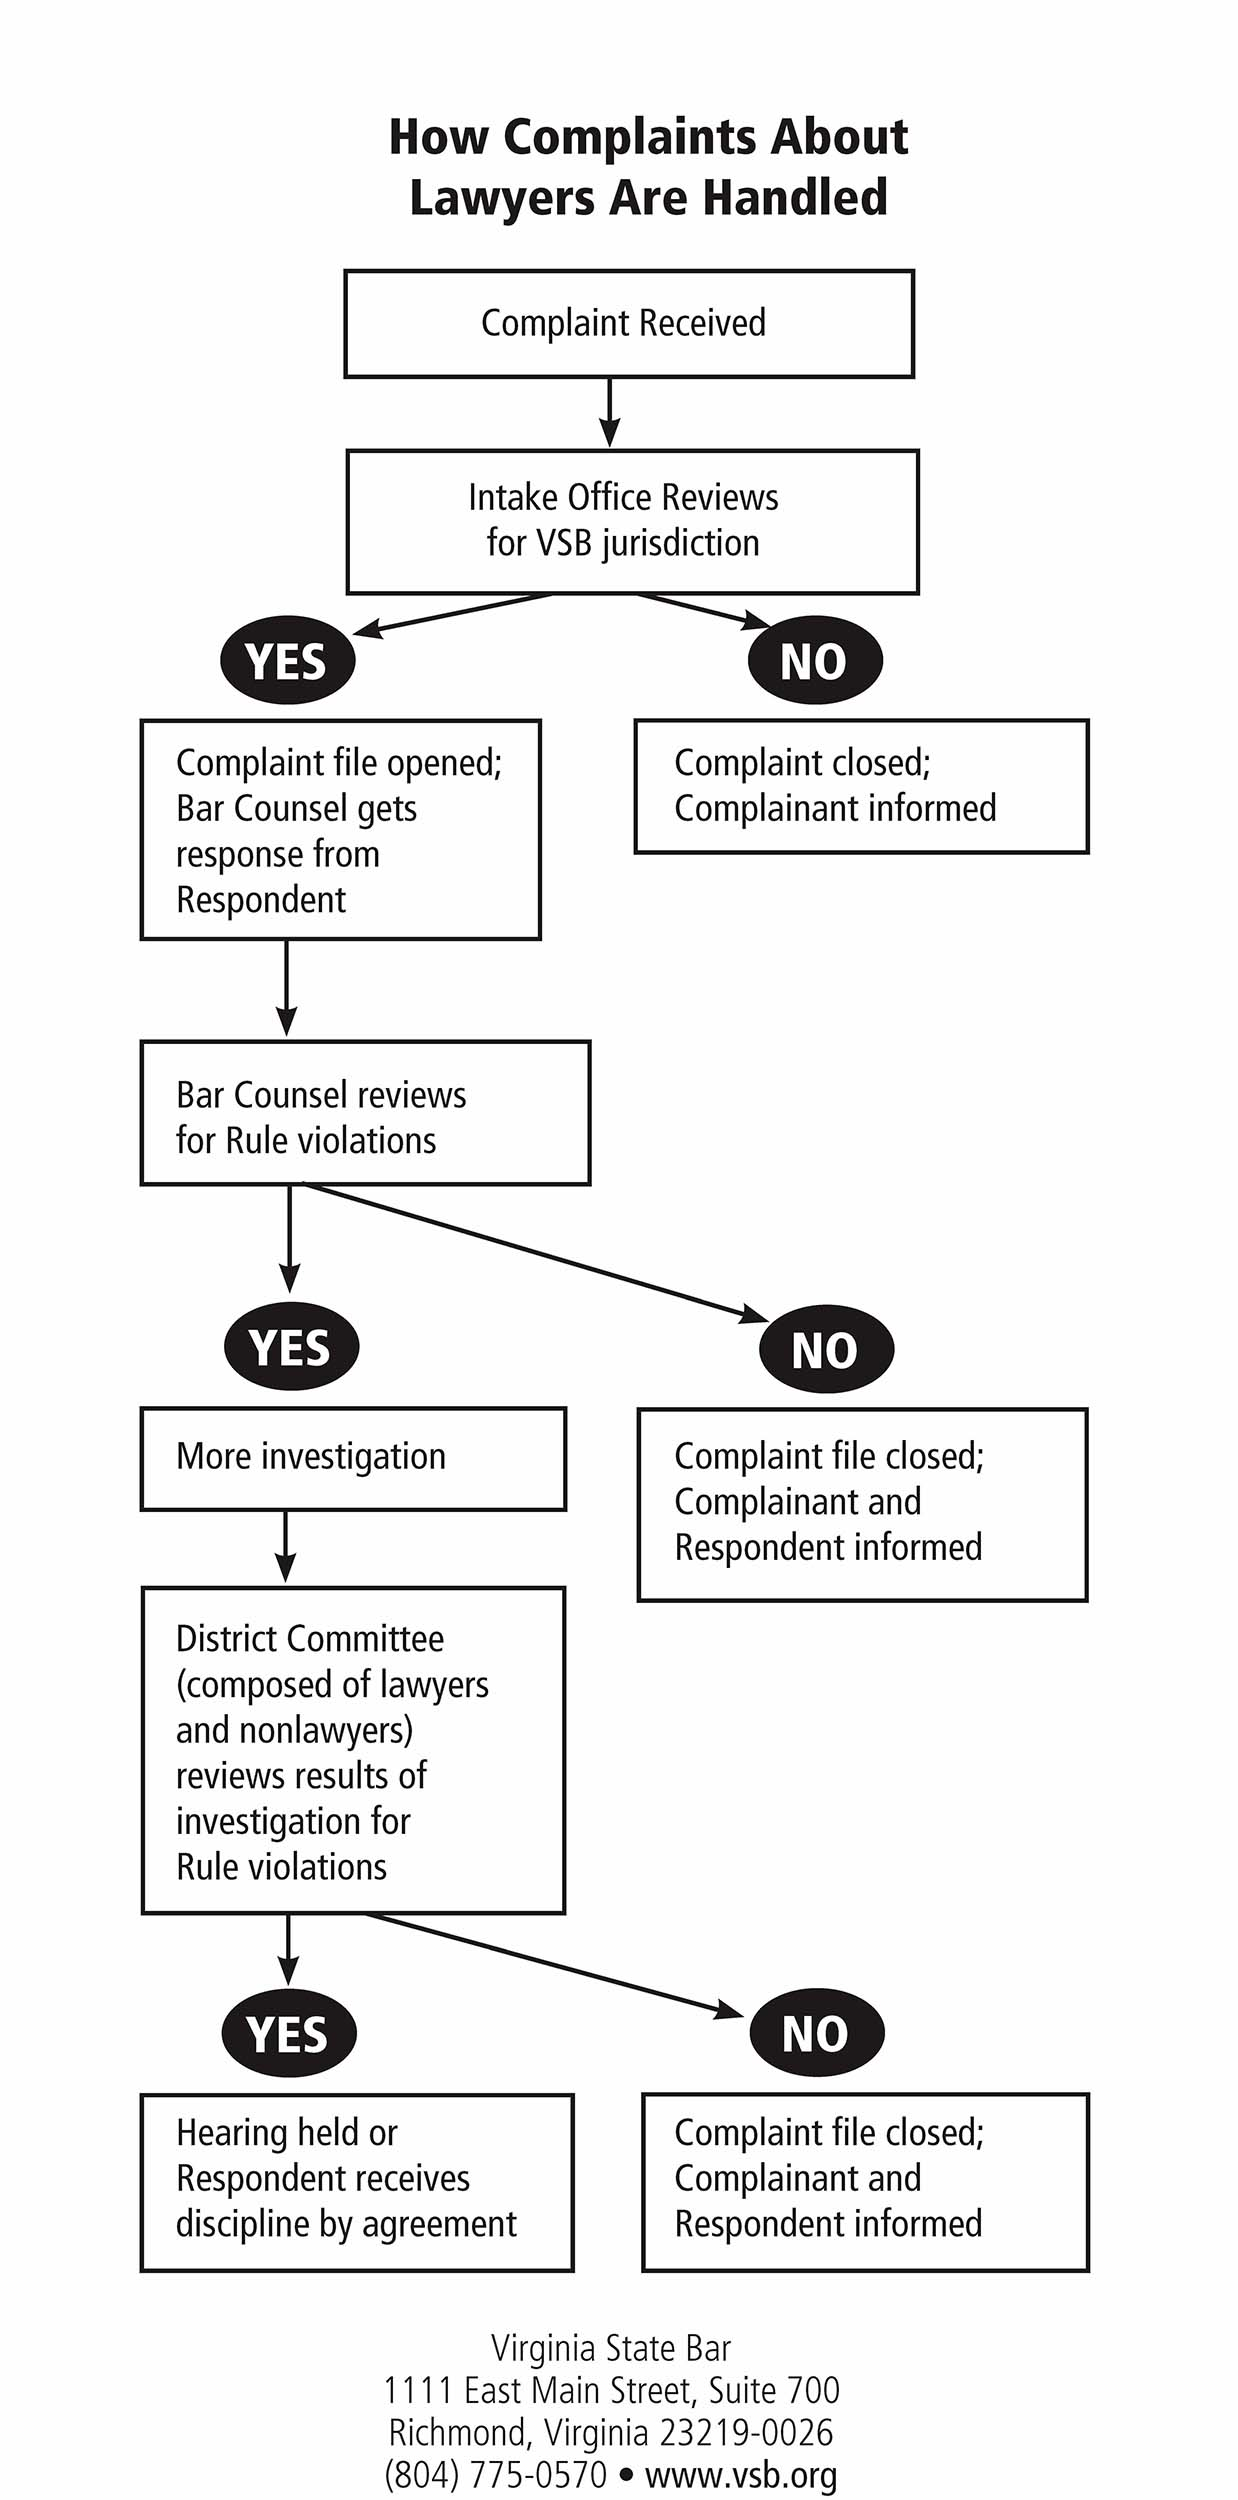 services template, content template, rationale template, expectations template, planning template, priorities template, innovation template, knowledge template, operations template, milestones template, activities template, vision template, intervention template, teaching template, risk template, methodology template, objectives template, learning template, history template, data template, on investigation outcome letter template